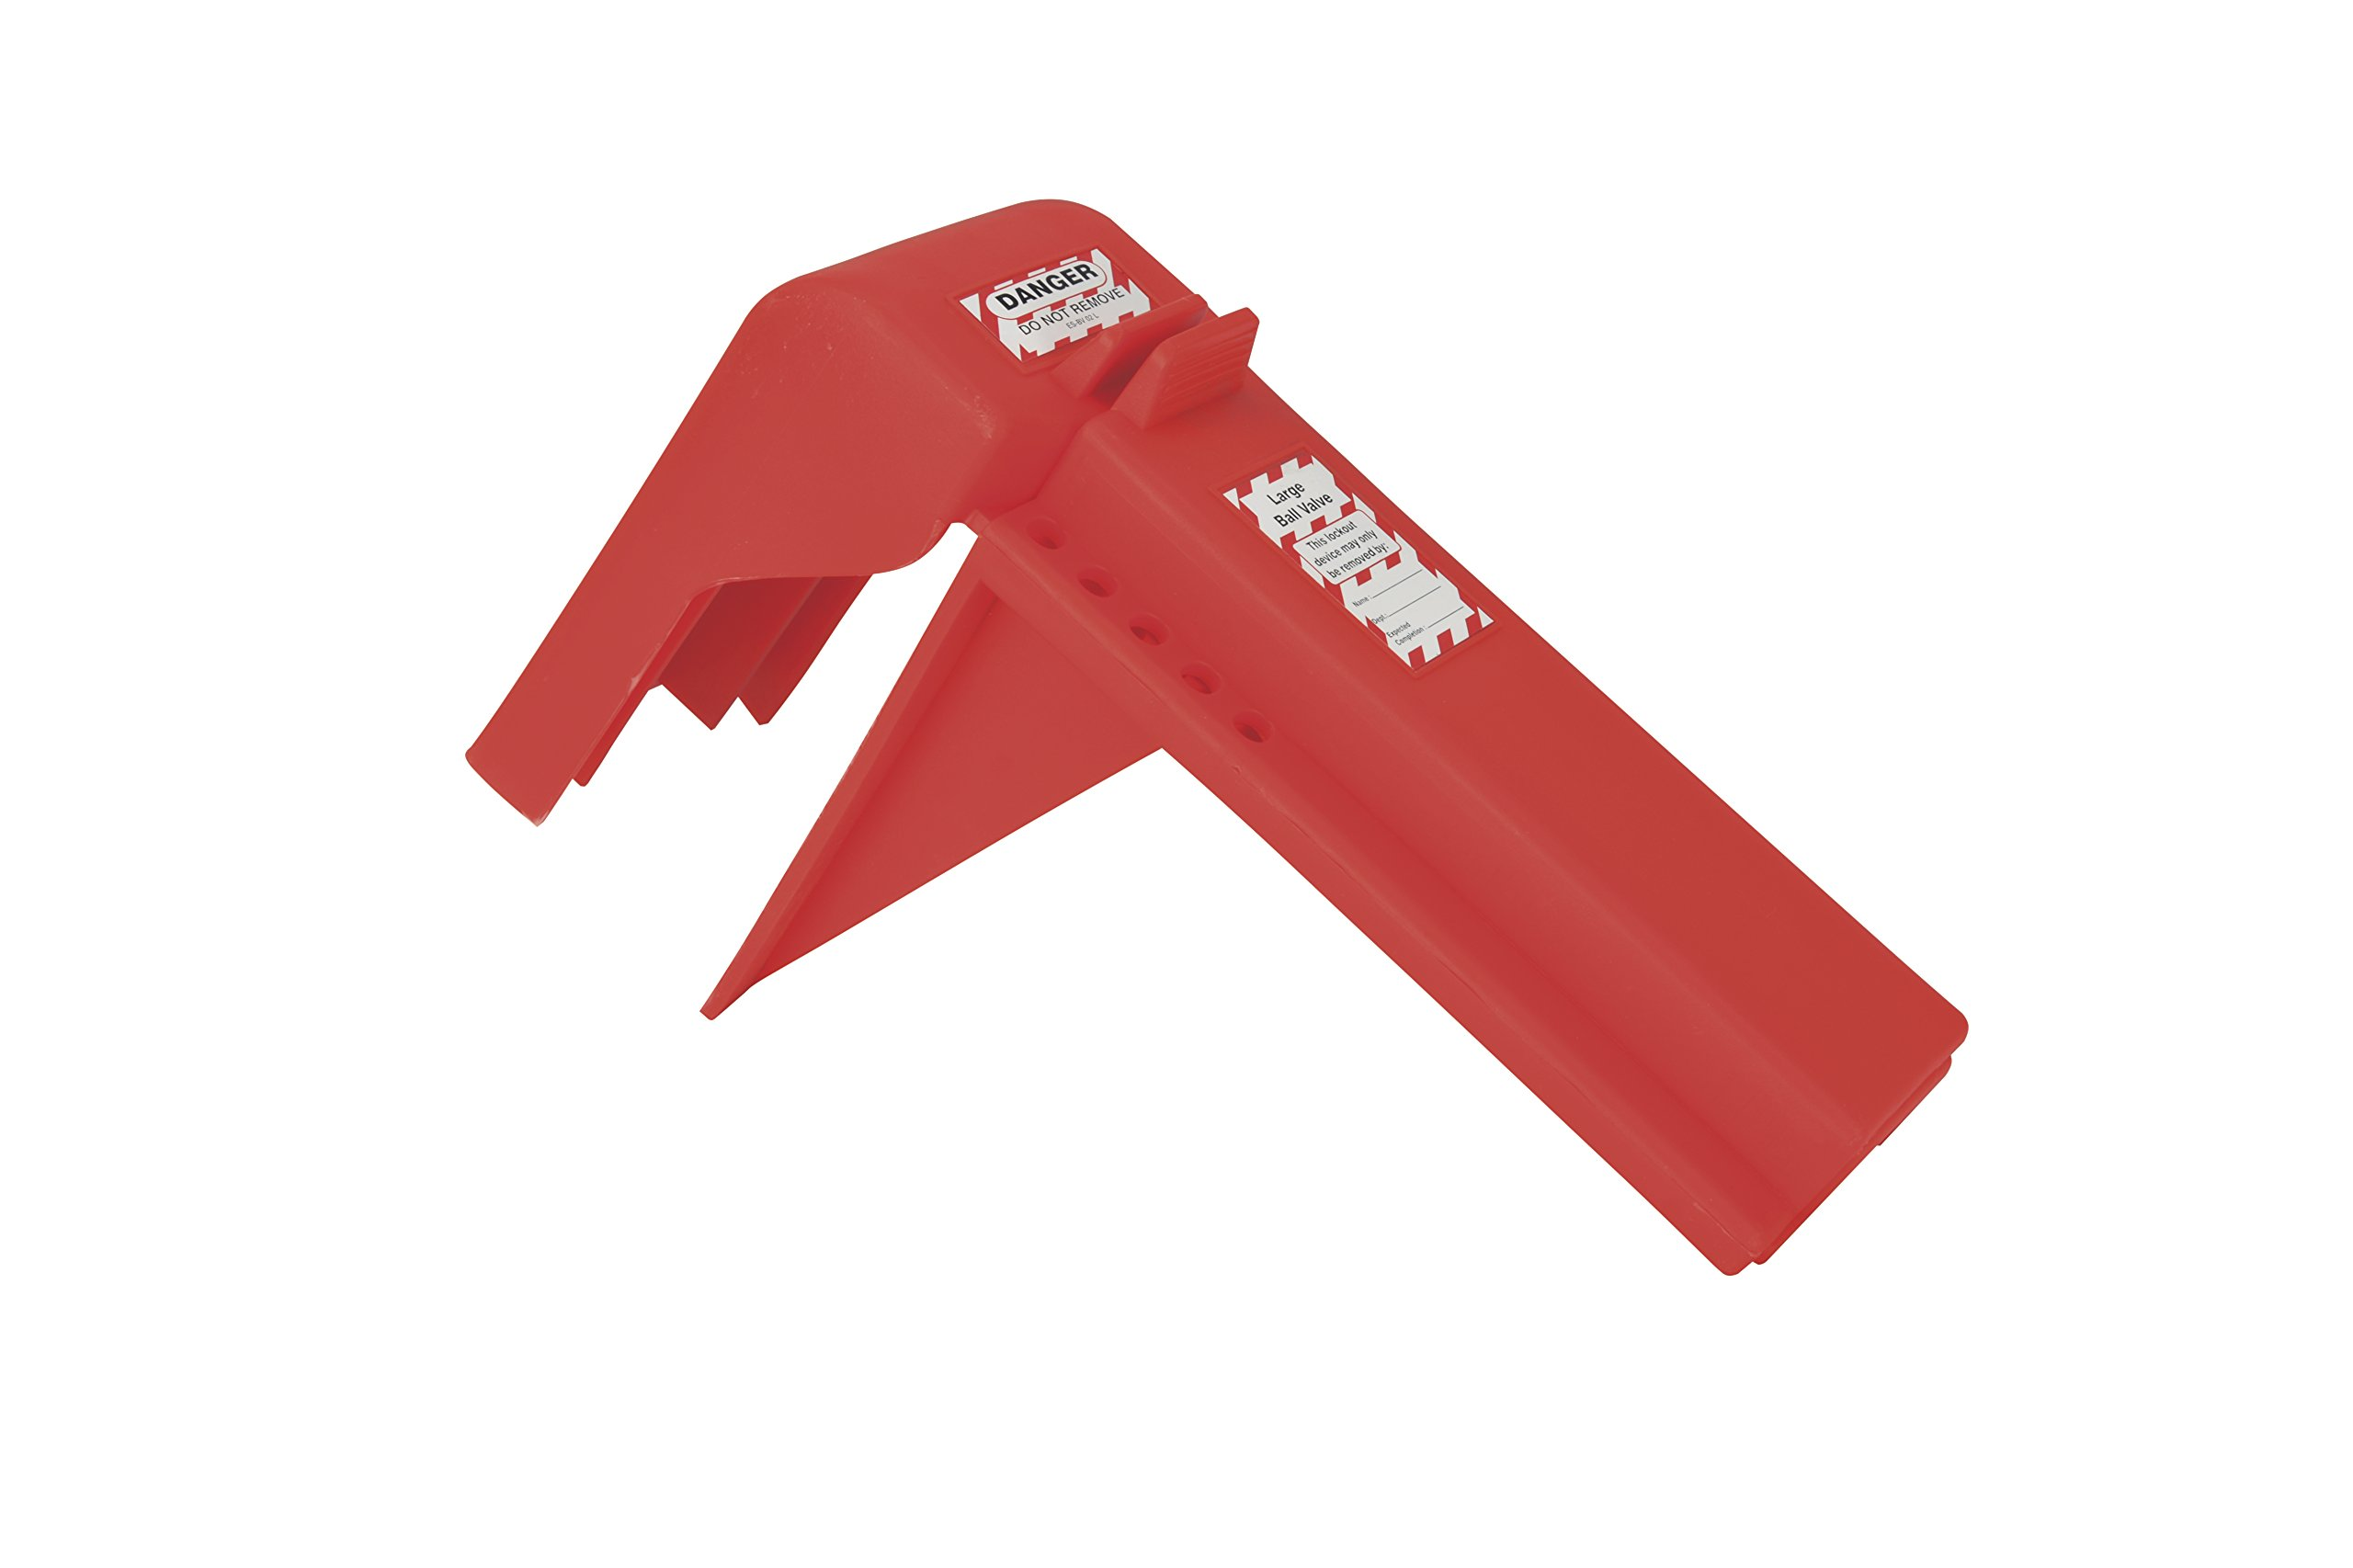 Oberon LOTO-BVLO-S-6 Ball Valve Lockout, Small, Red (Pack of 6)